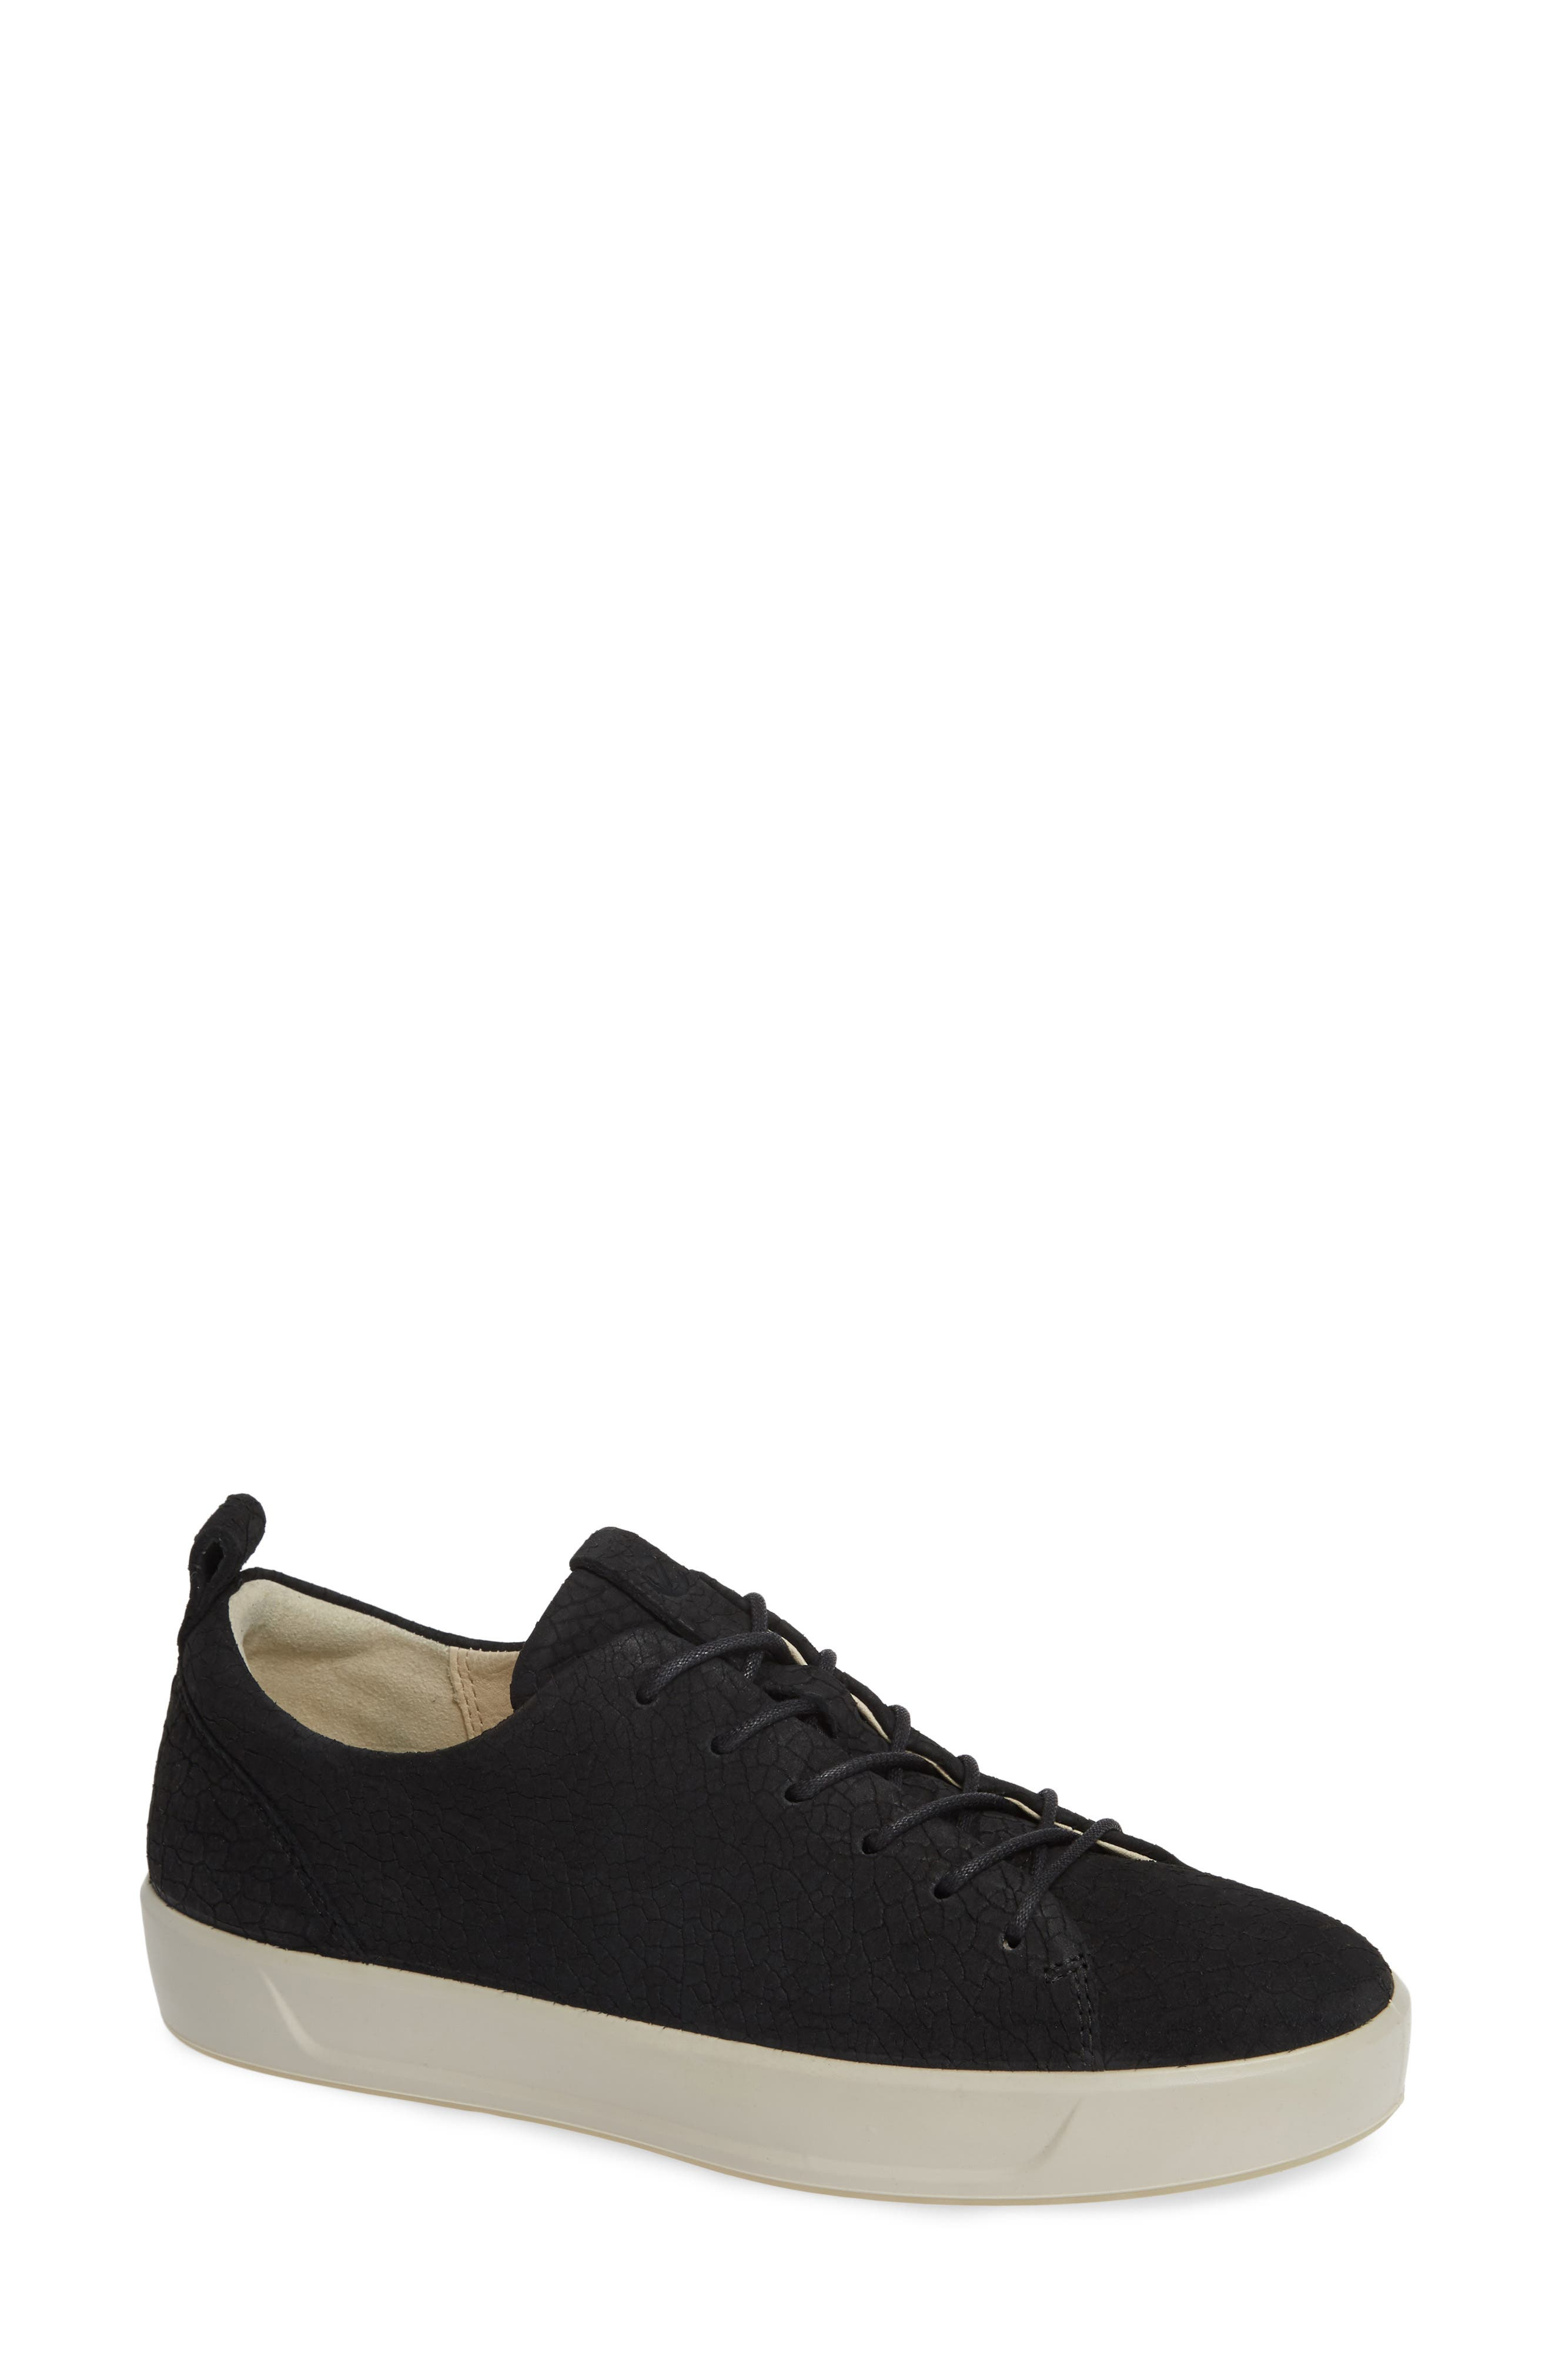 Soft 8 Sneaker,                             Main thumbnail 1, color,                             BLACK CRACKLED LEATHER